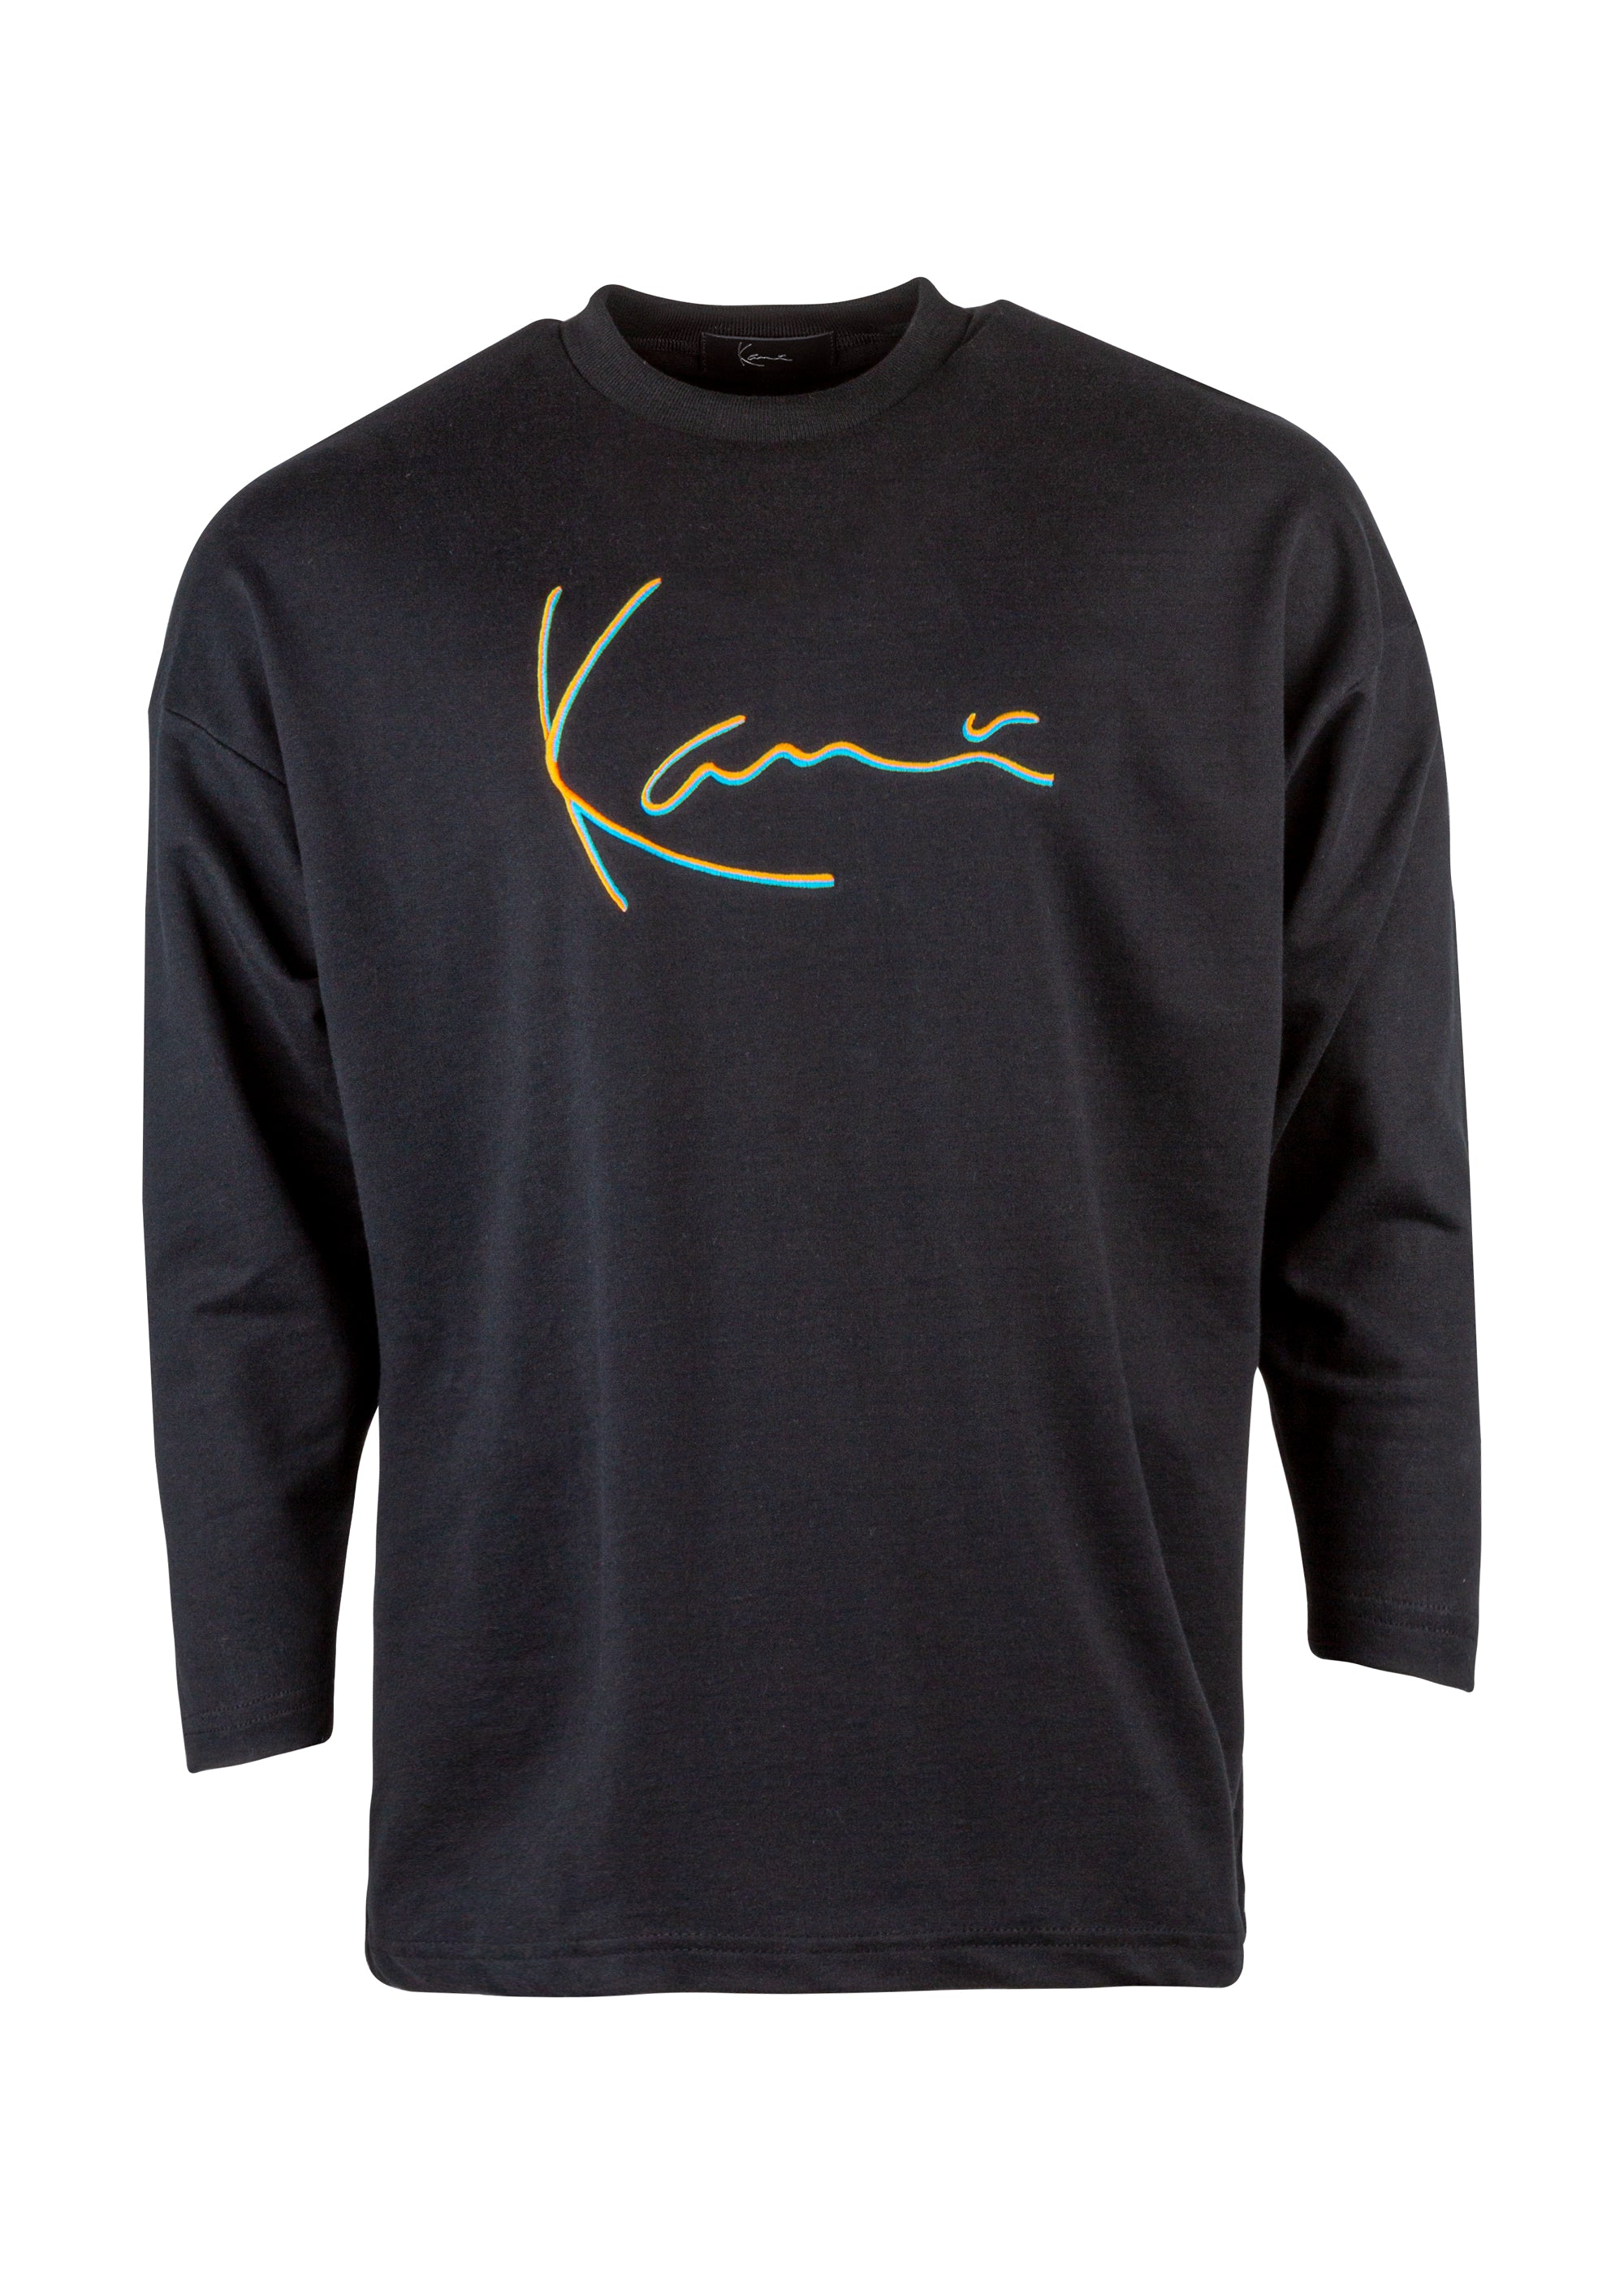 Iconic Long Sleeve Tee (Black)